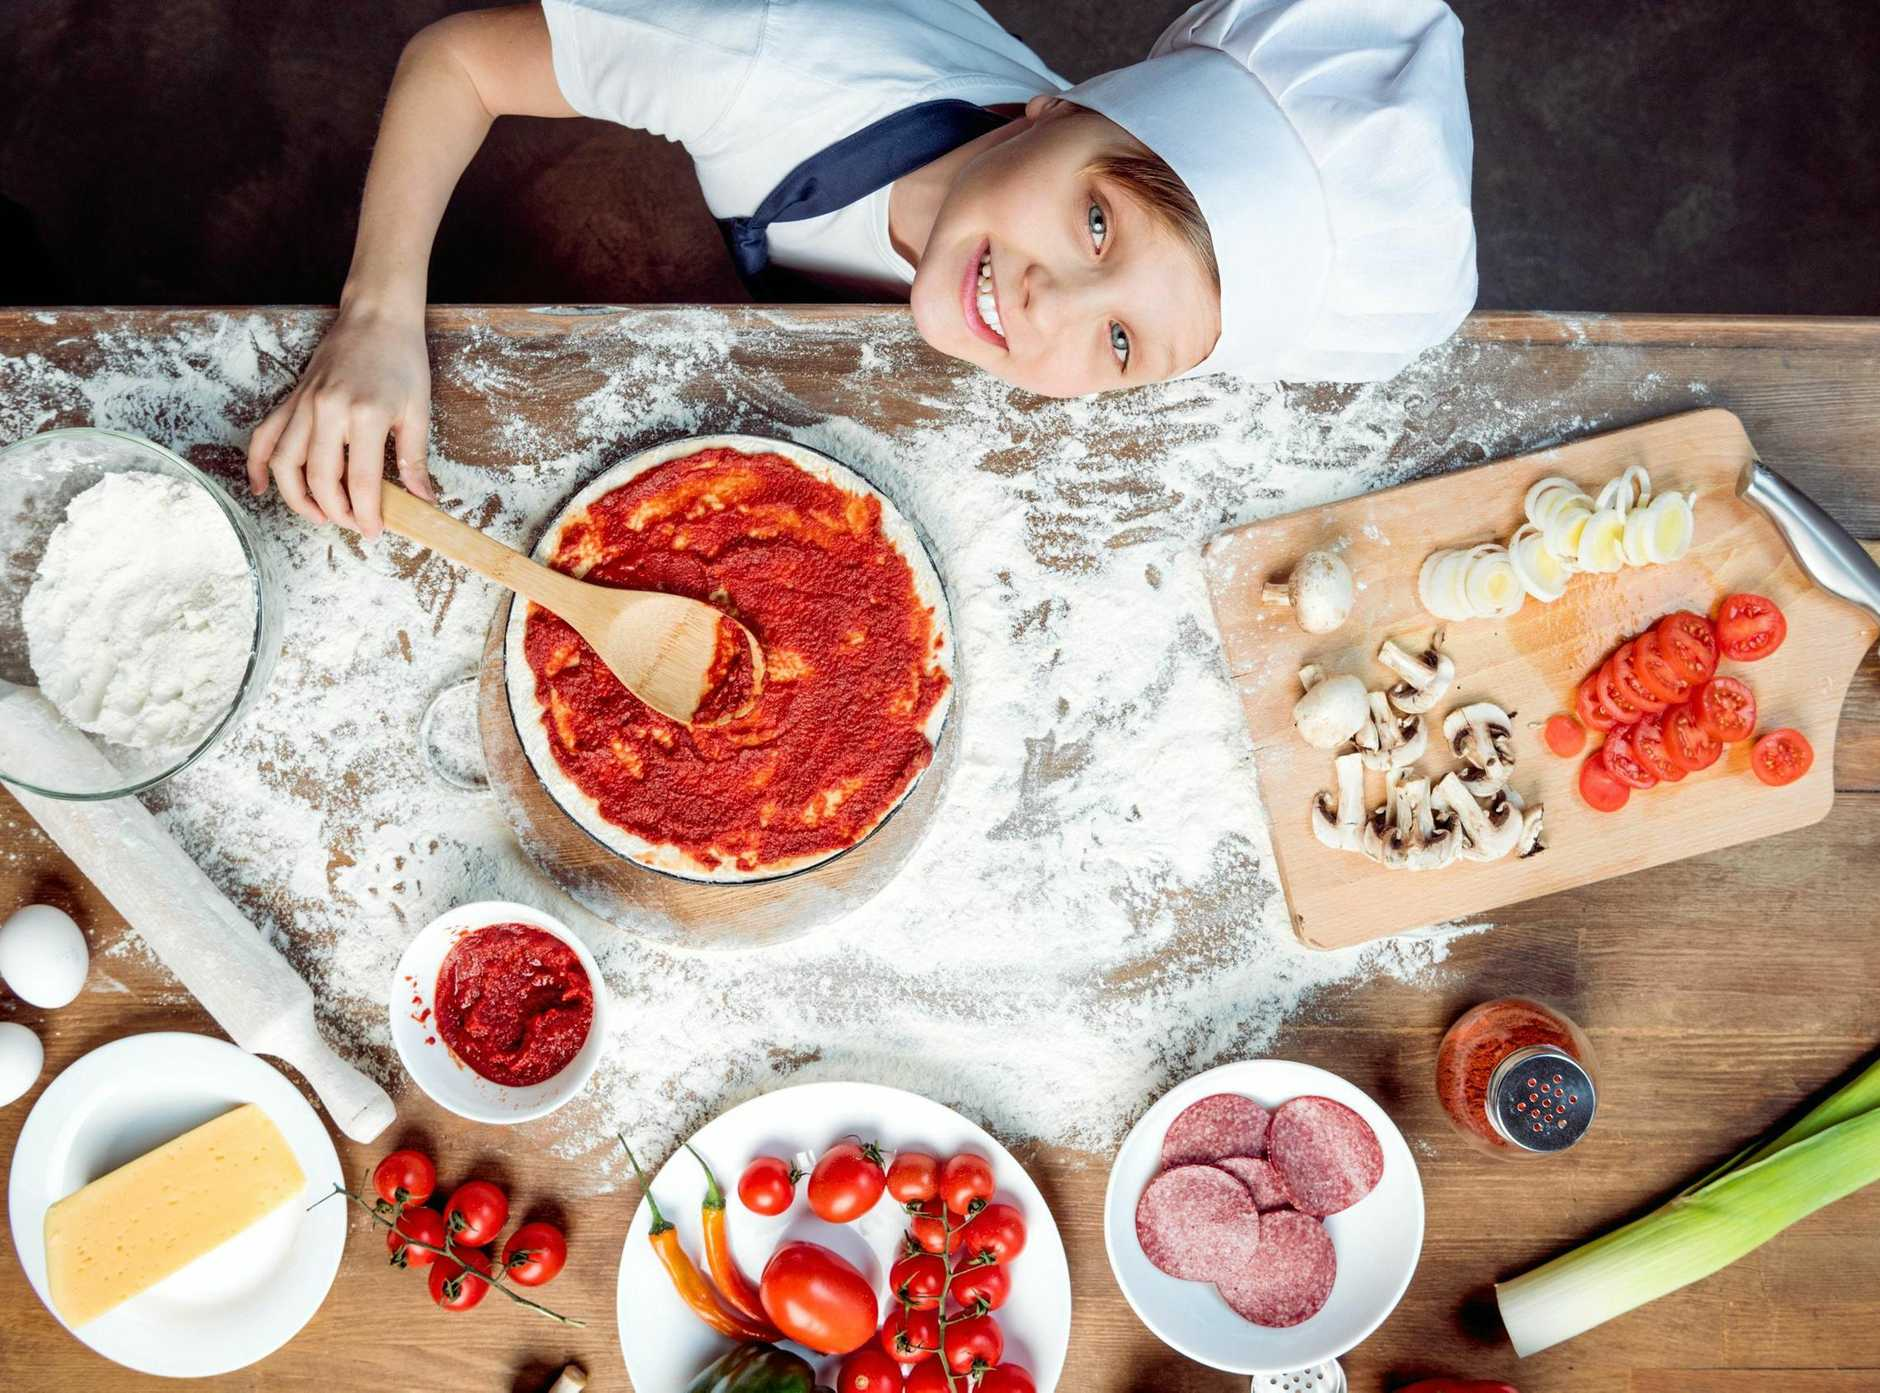 Having a pizza-making competition is a fun activity for the kids during the school holidays.